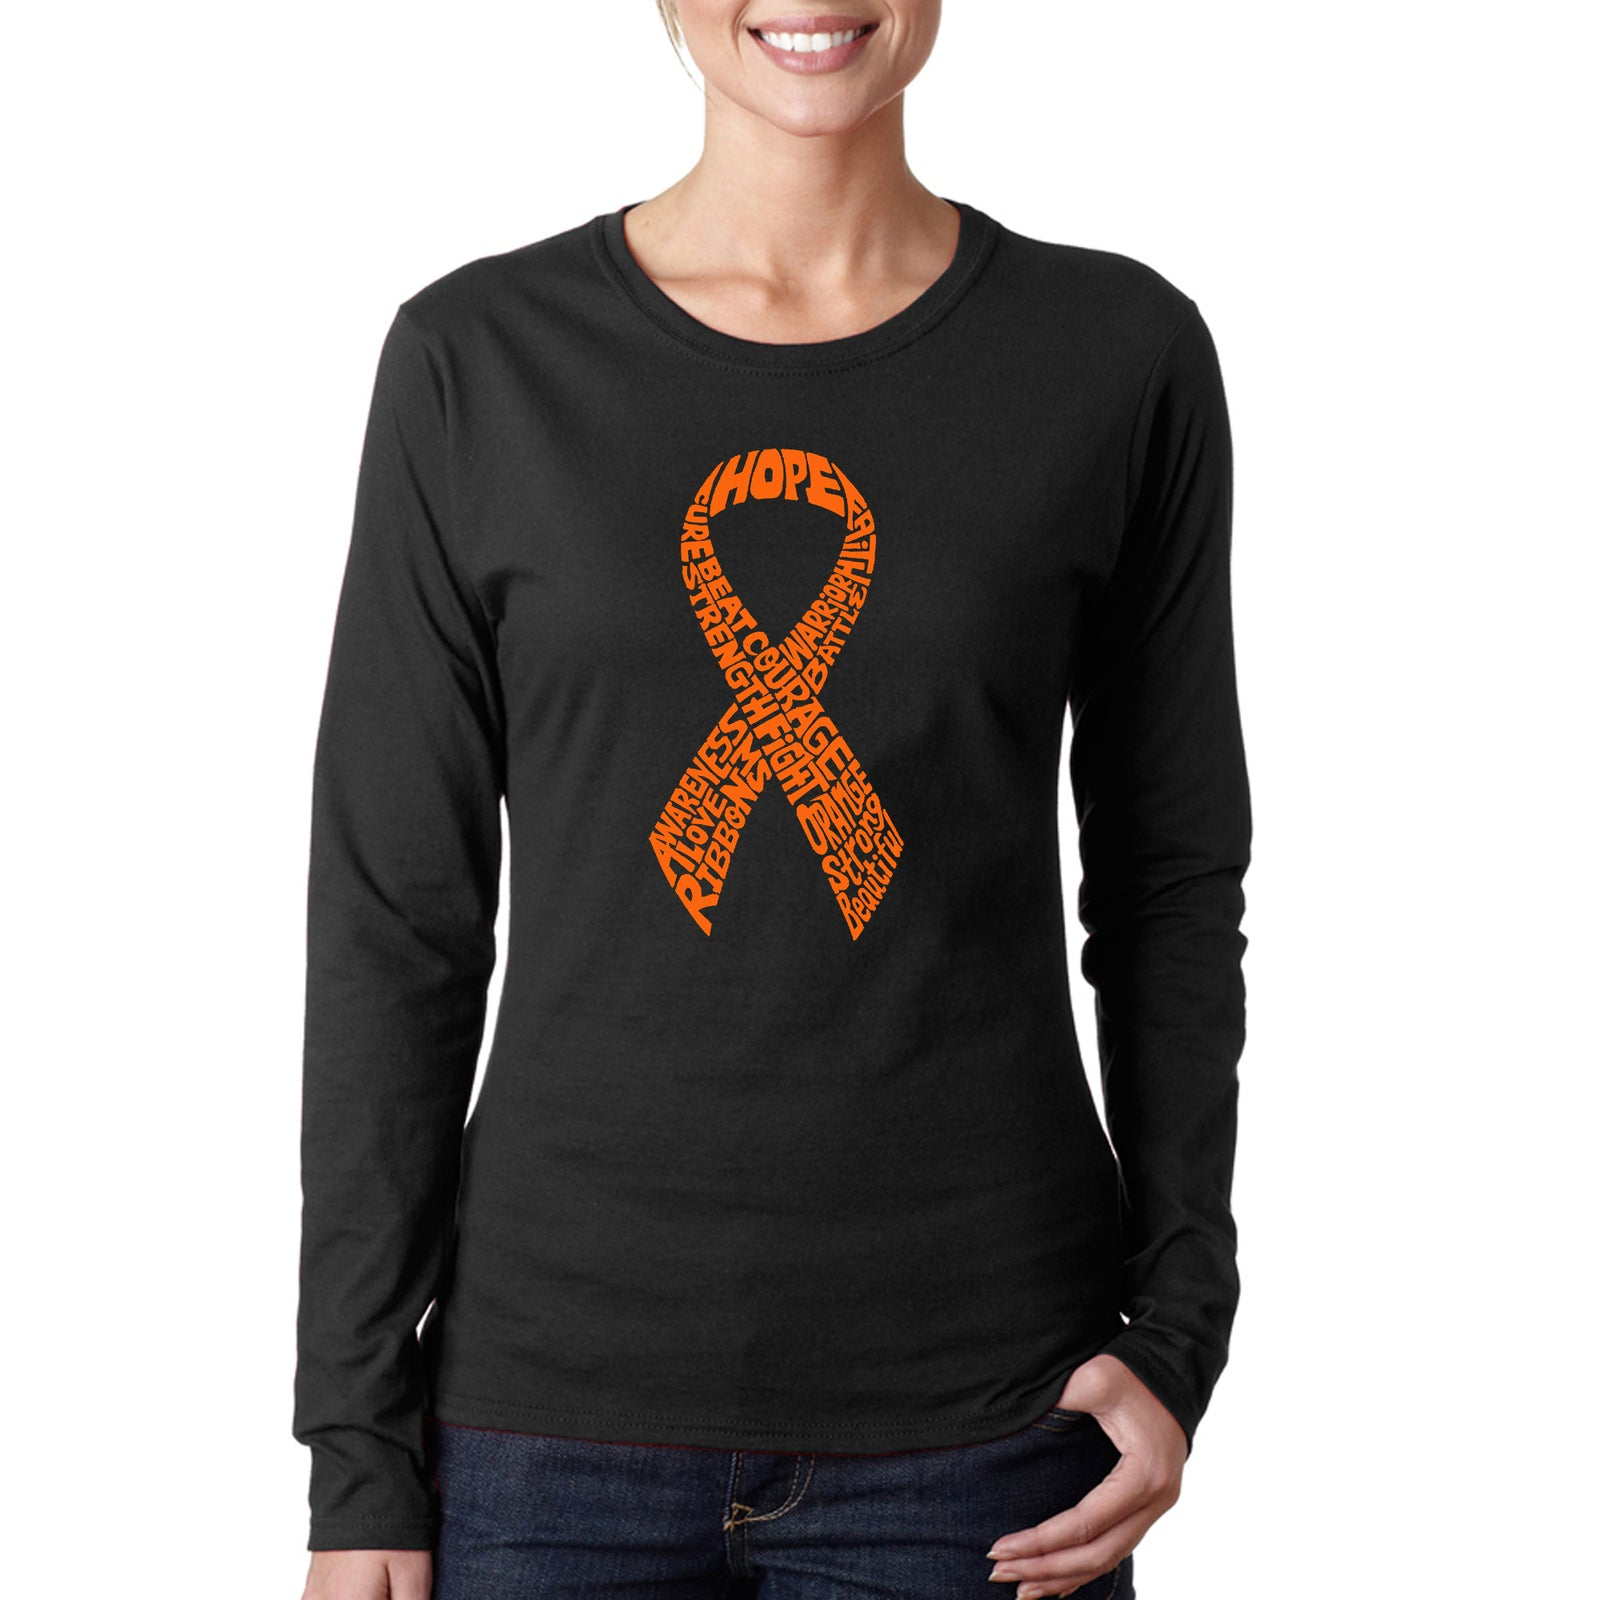 Women's Word Art Long Sleeve T-Shirt - Ms Ribbon